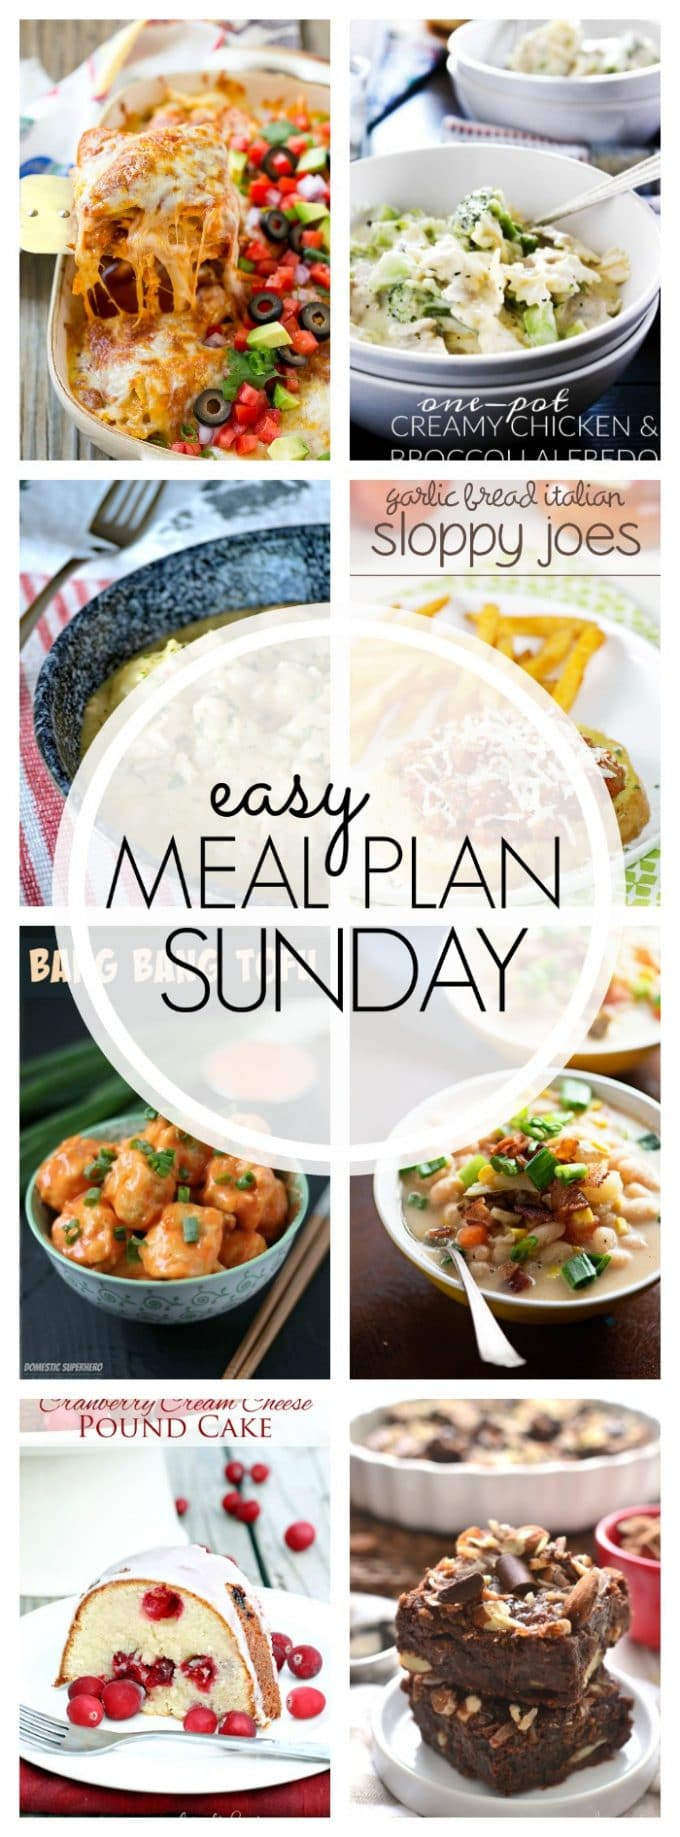 Easy Meal Plan Sunday - Week 75